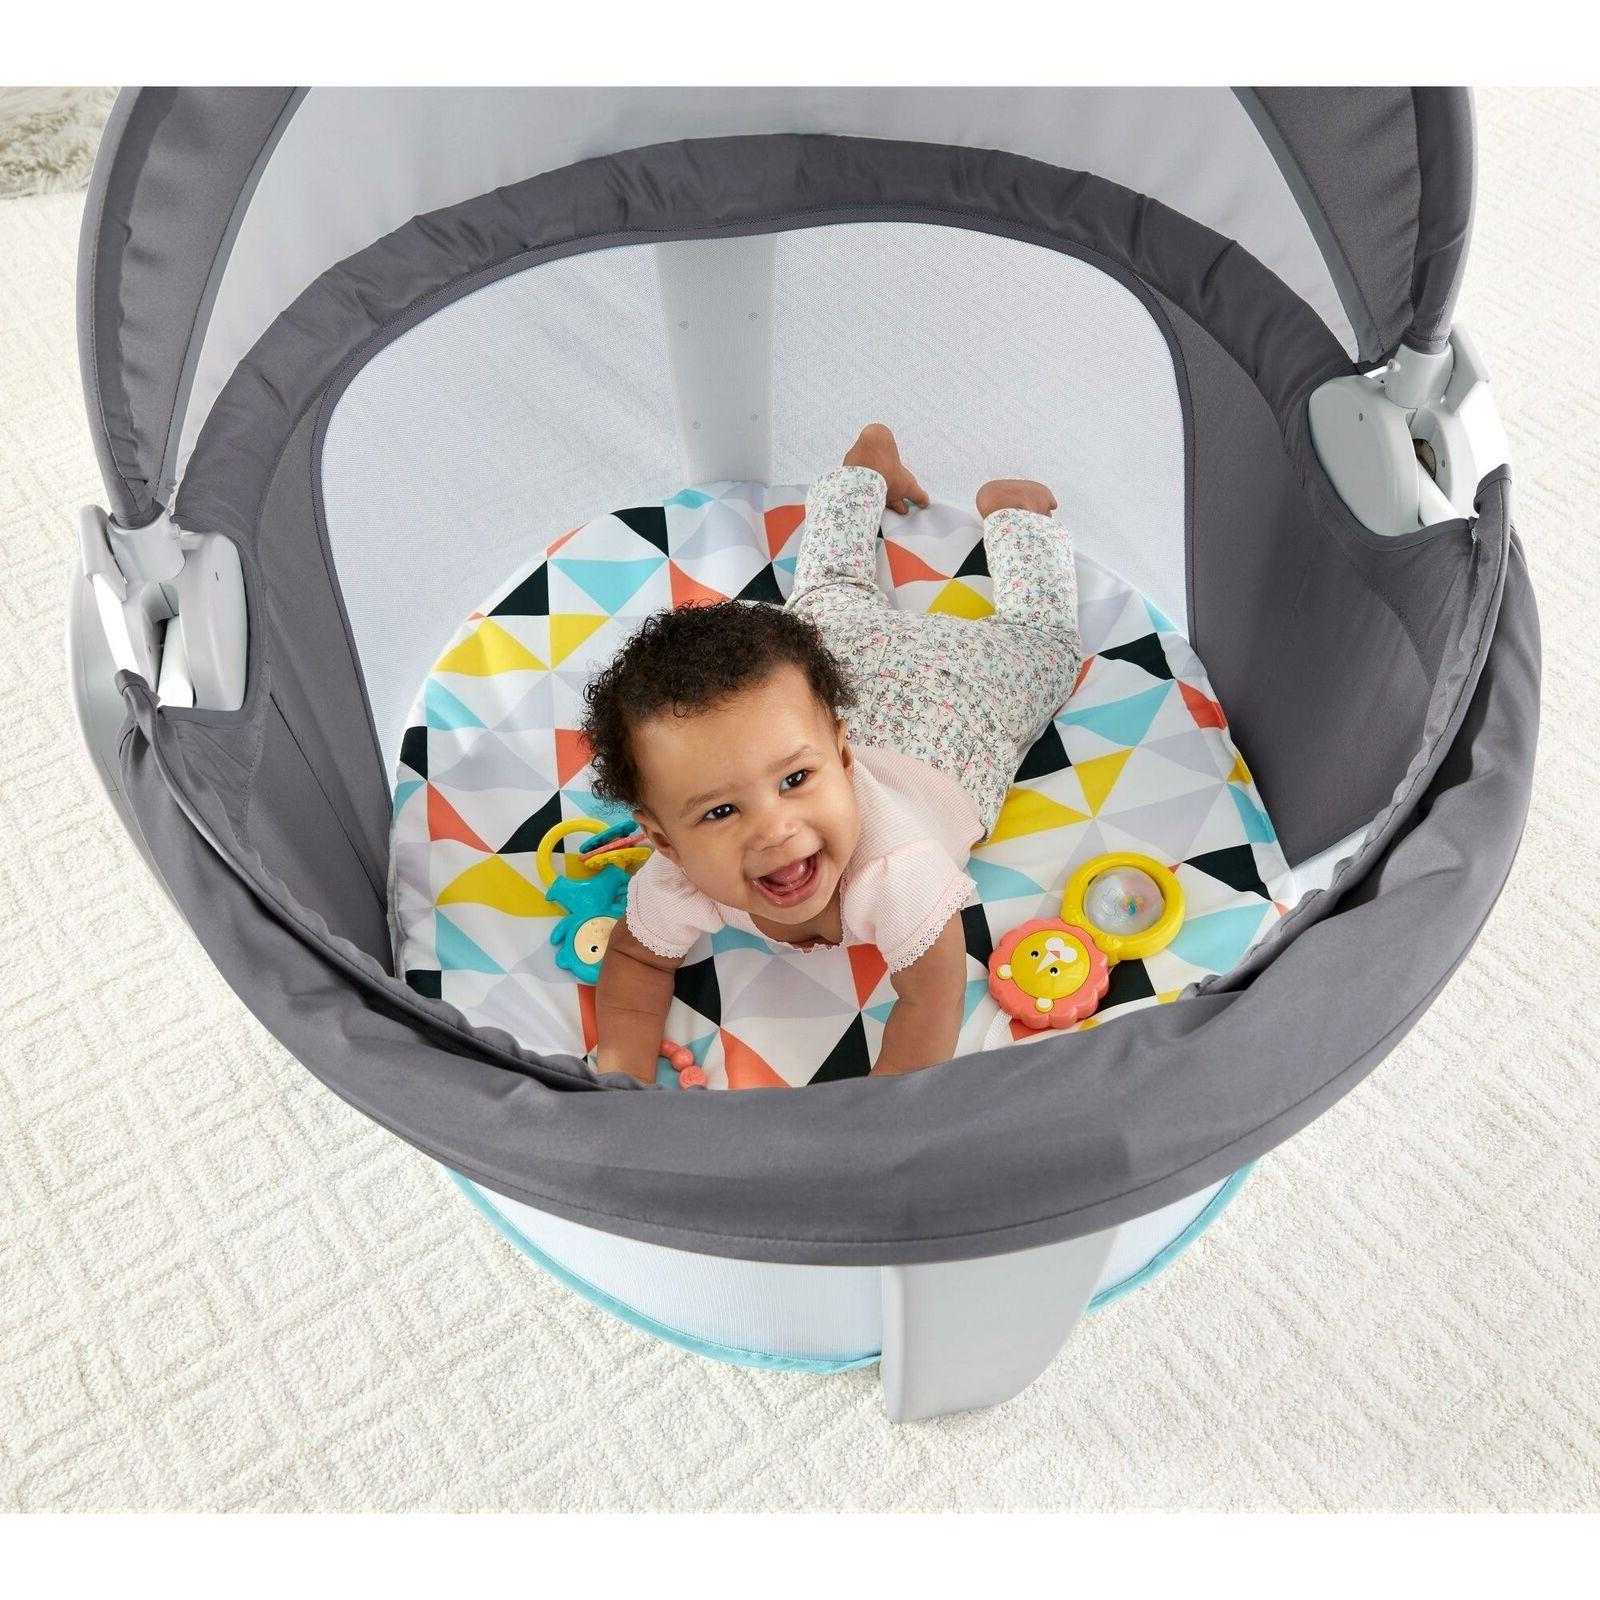 Fisher-Price On-The-Go Dome Safe Activity Windmill Playard